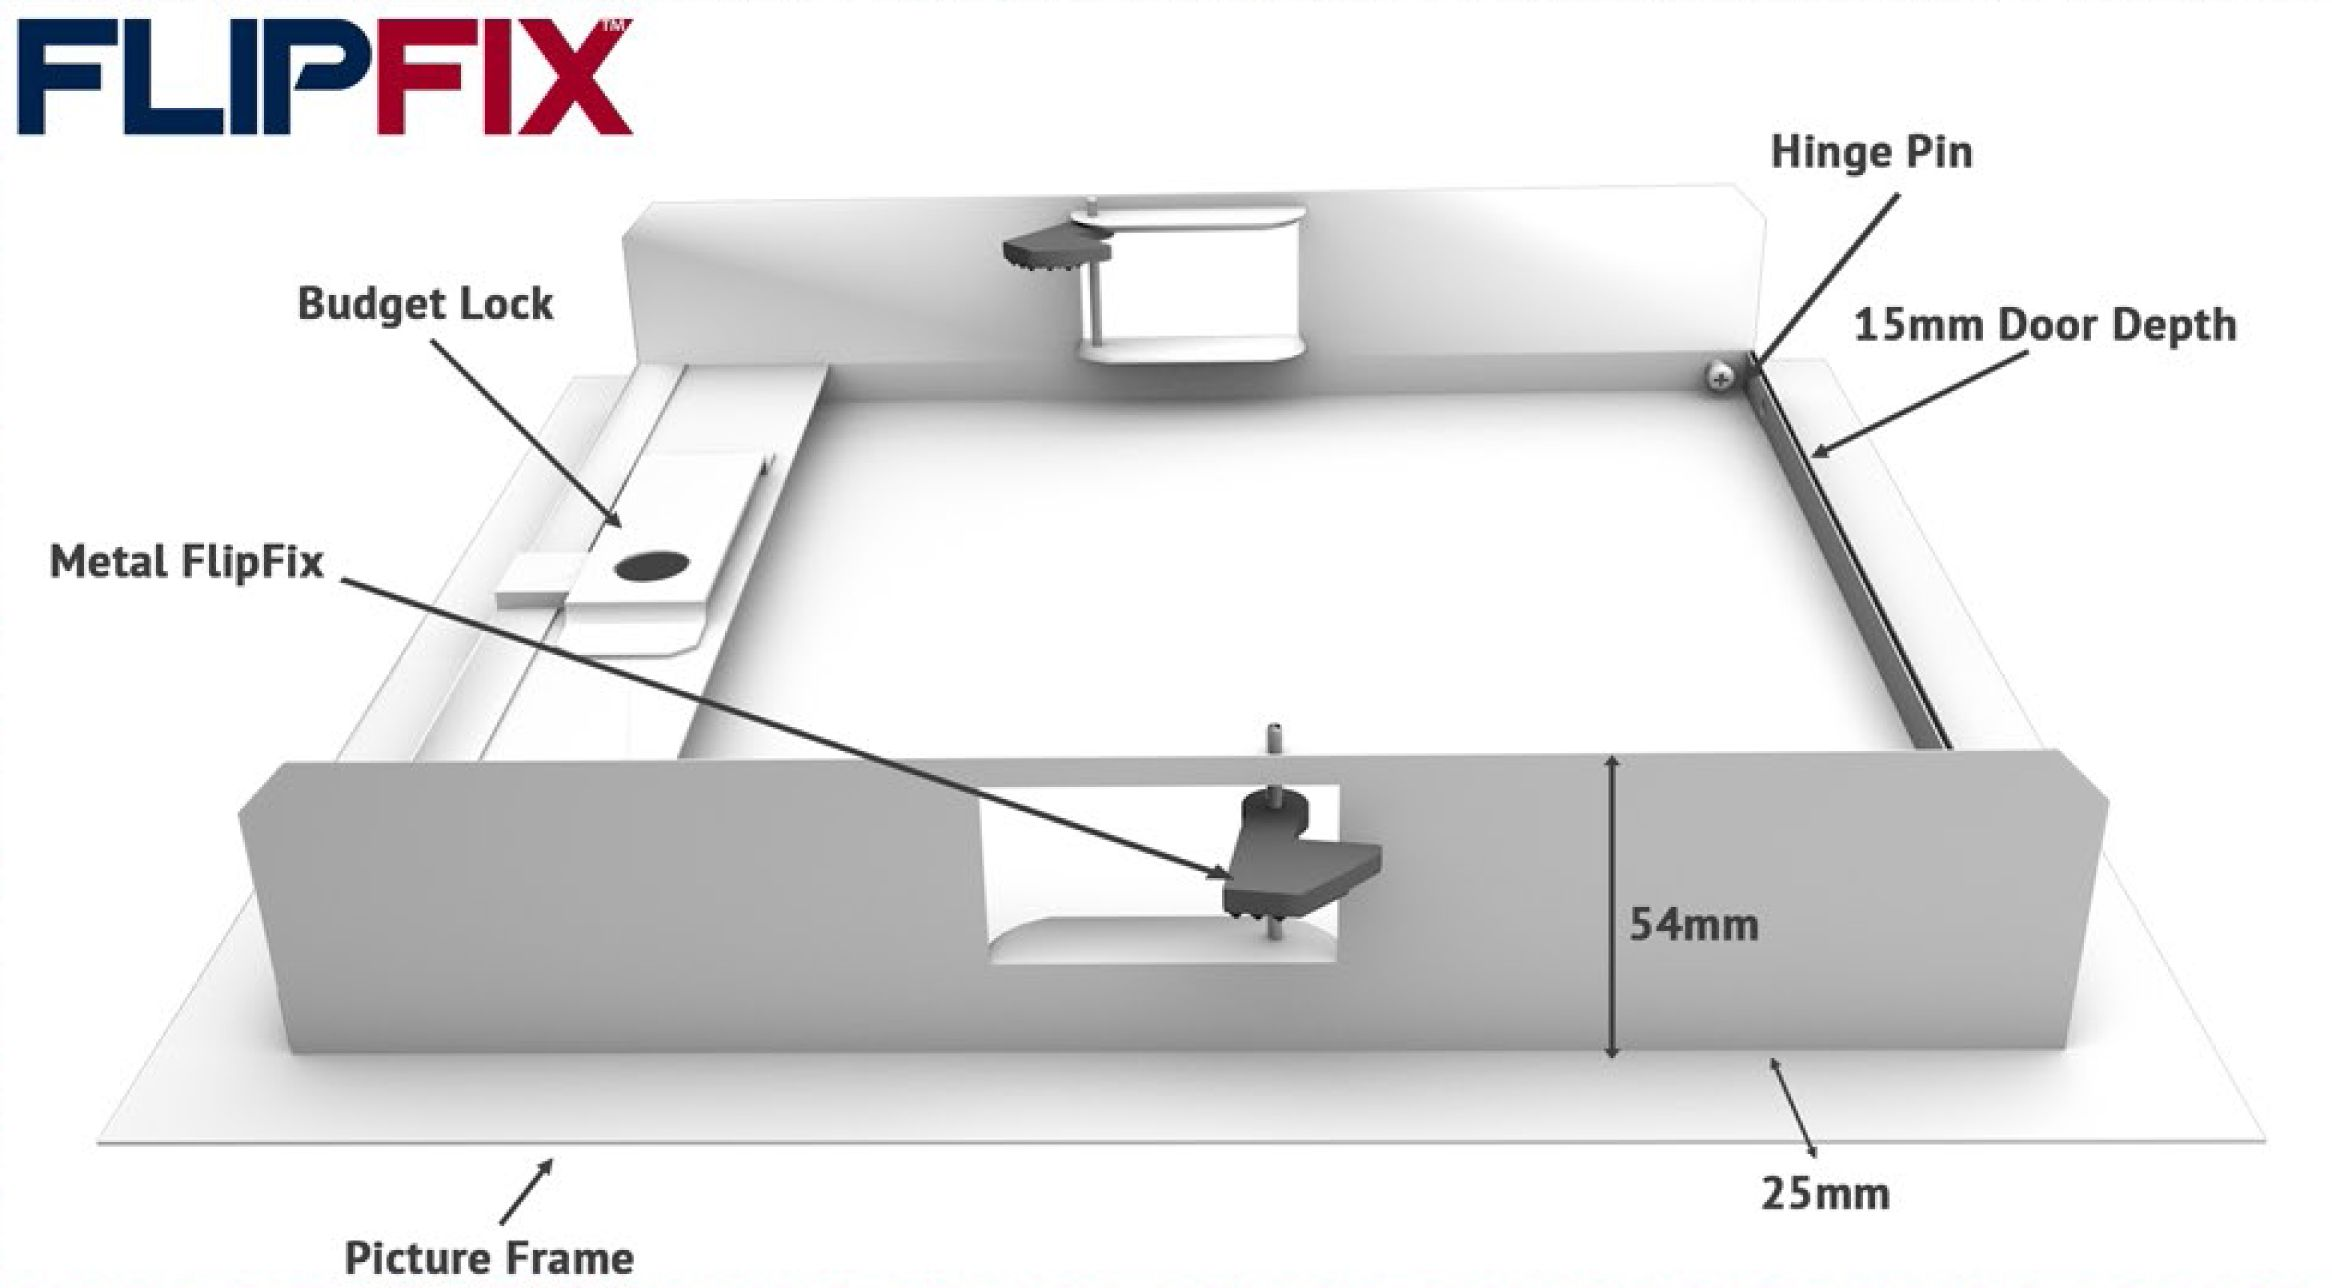 Easy To Install Wall And Ceiling Access Panels The Installation Takes Only 3 Minutes Thanks To The Flipfix Device Avai Metal Door Door Beads Ceiling Covering